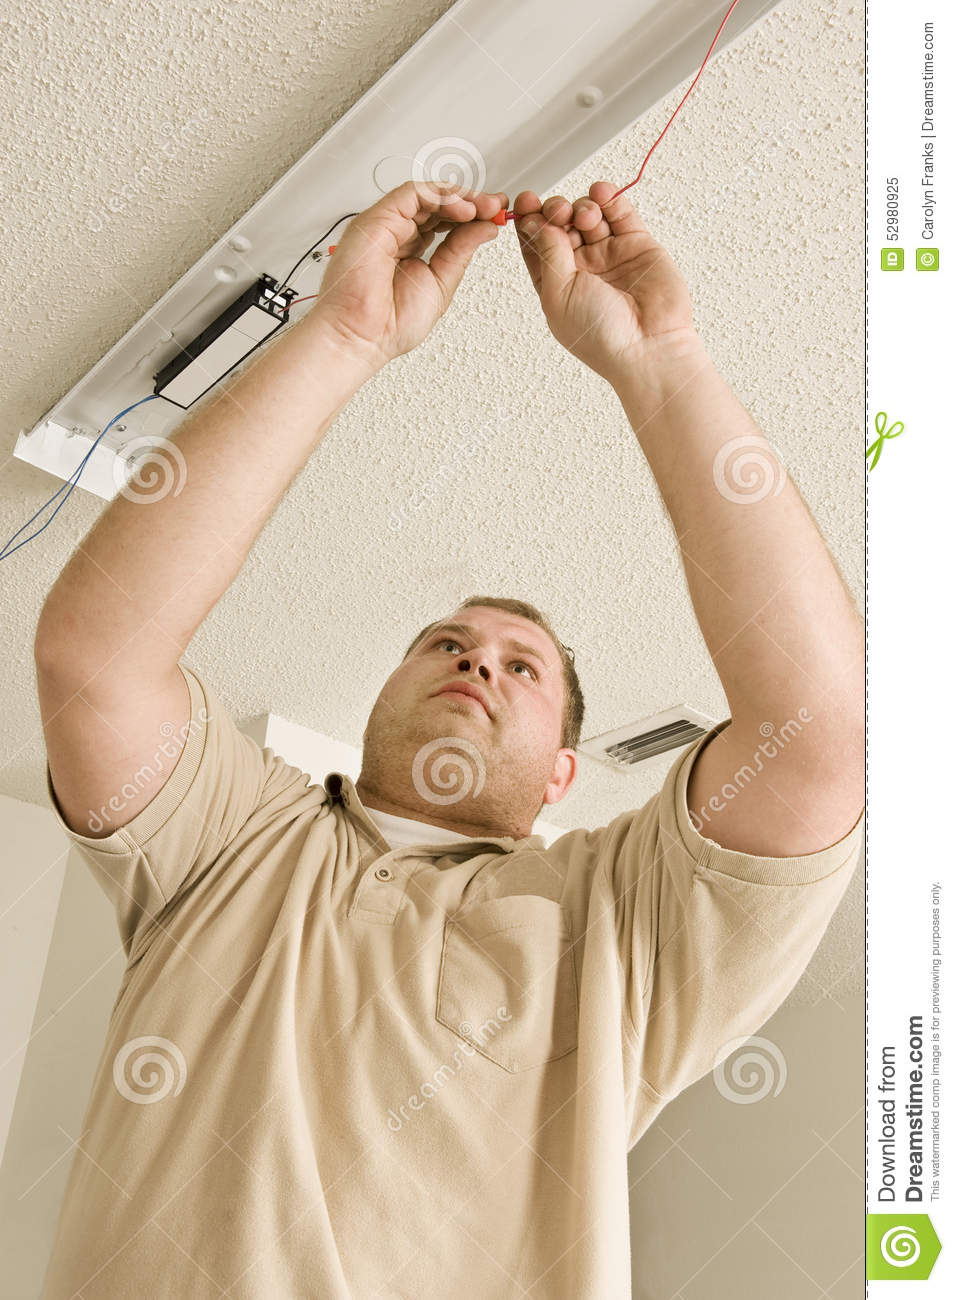 Installing Fluorescent Light Fixture Stock Image - Image of males ...